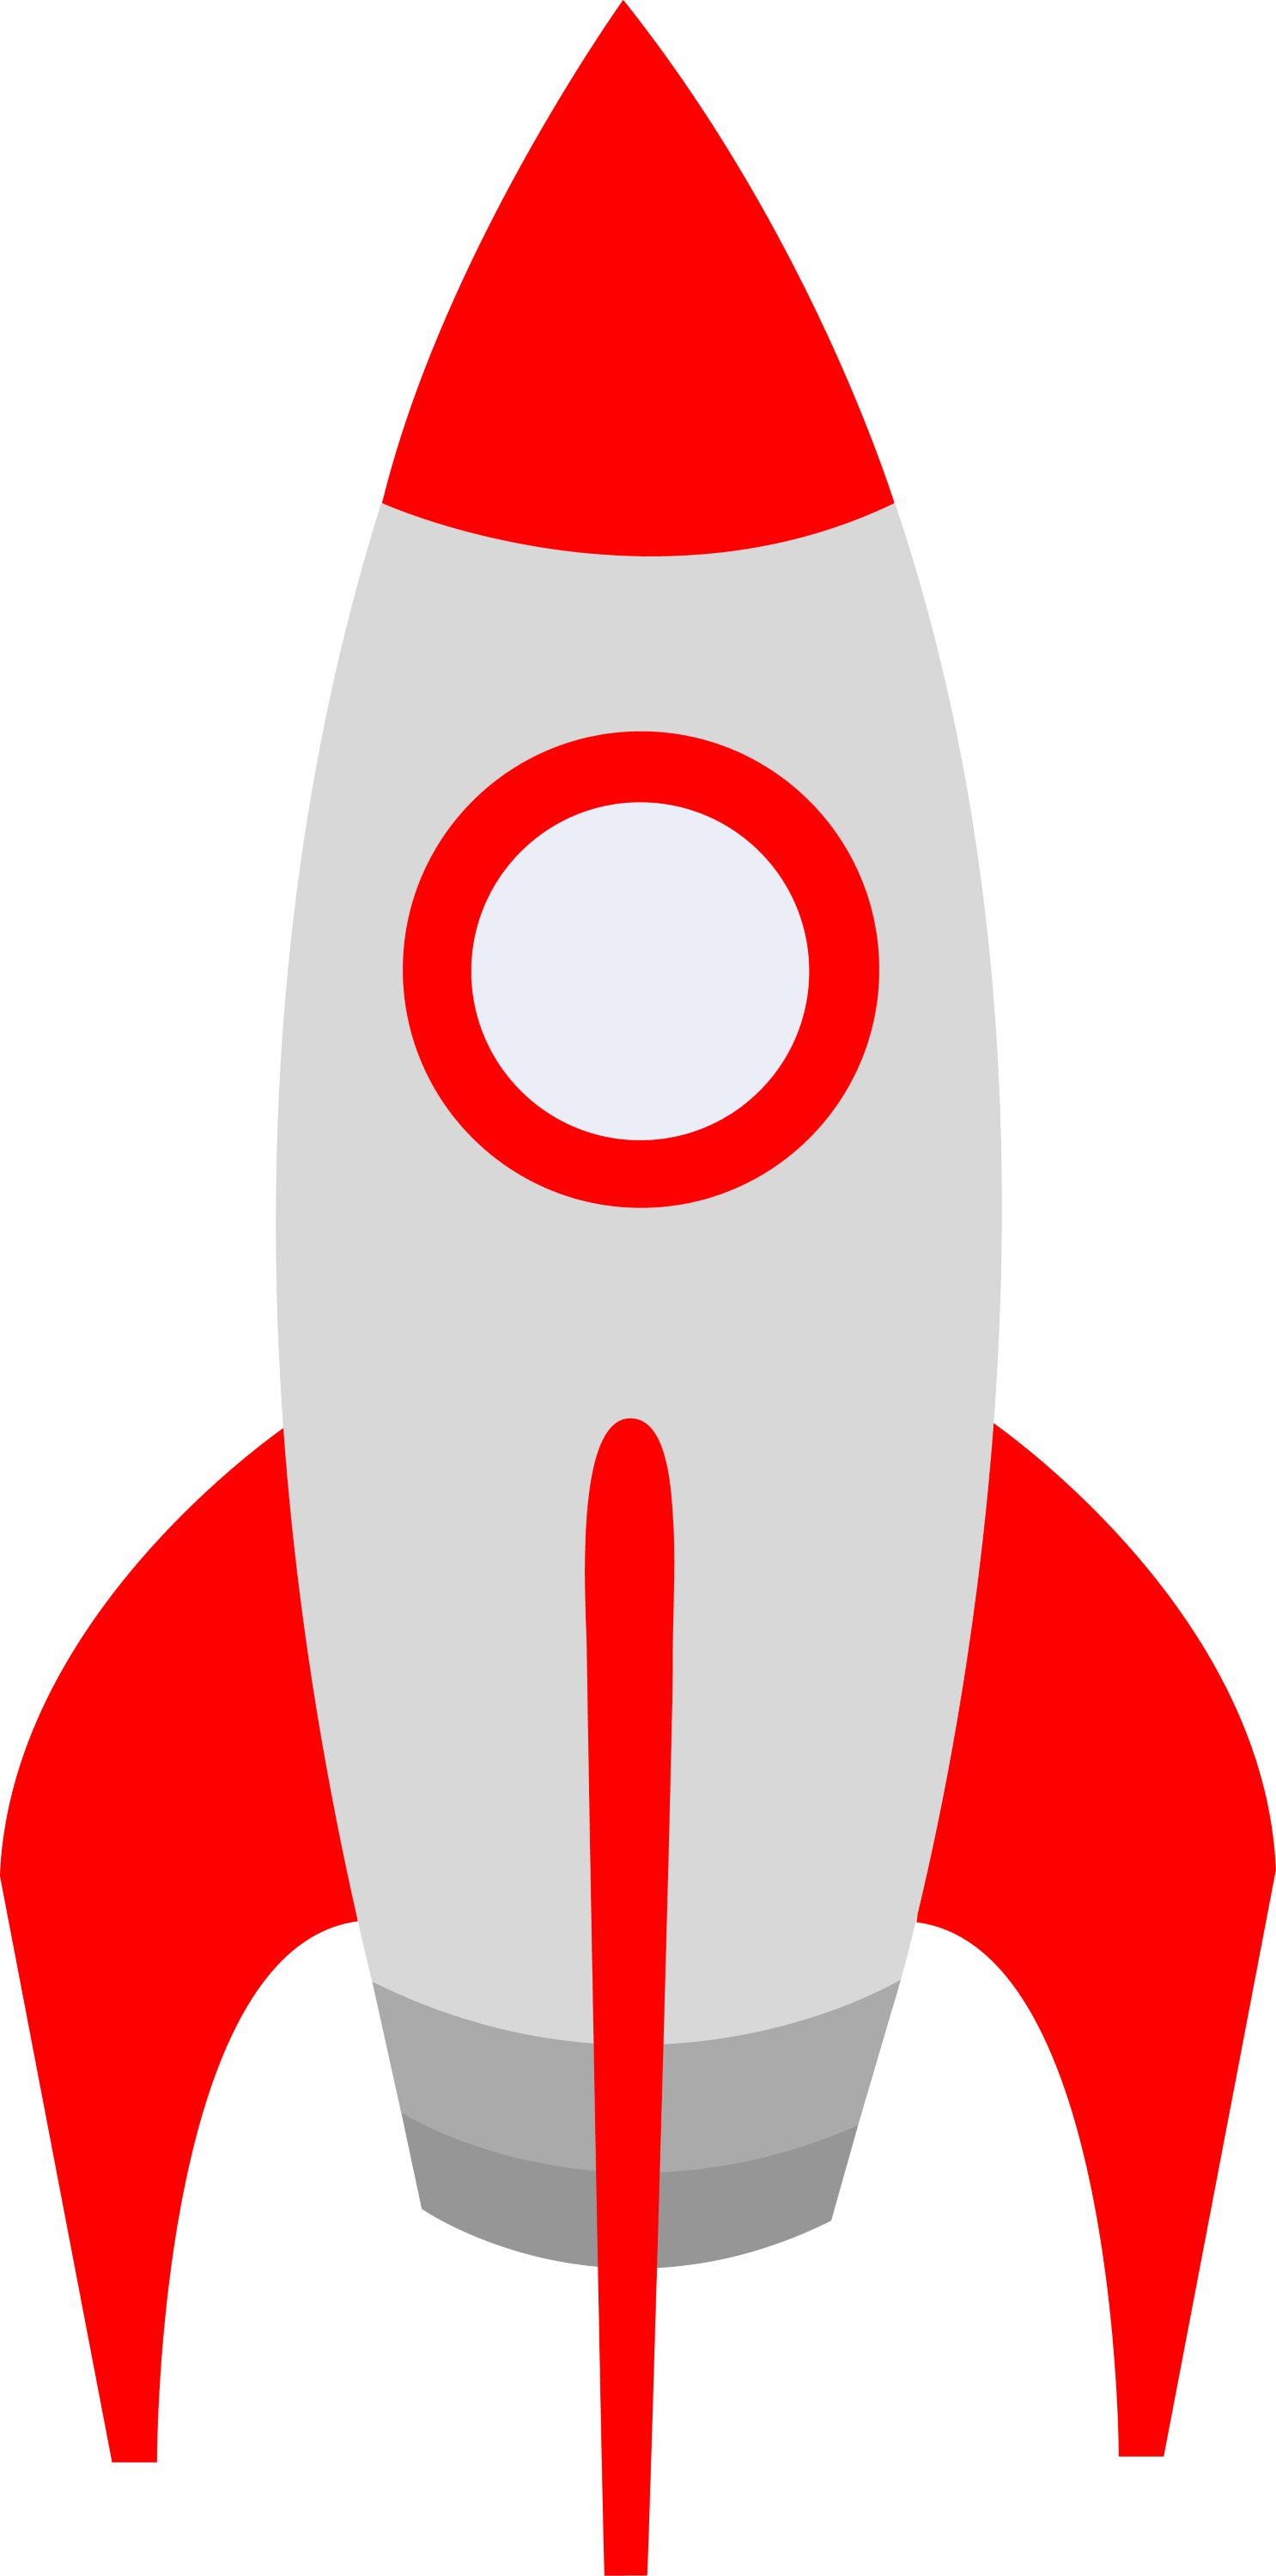 Small Red Retro Space Rocket - Free Clip Art: sweetclipart.com/small-red-retro-space-rocket-78